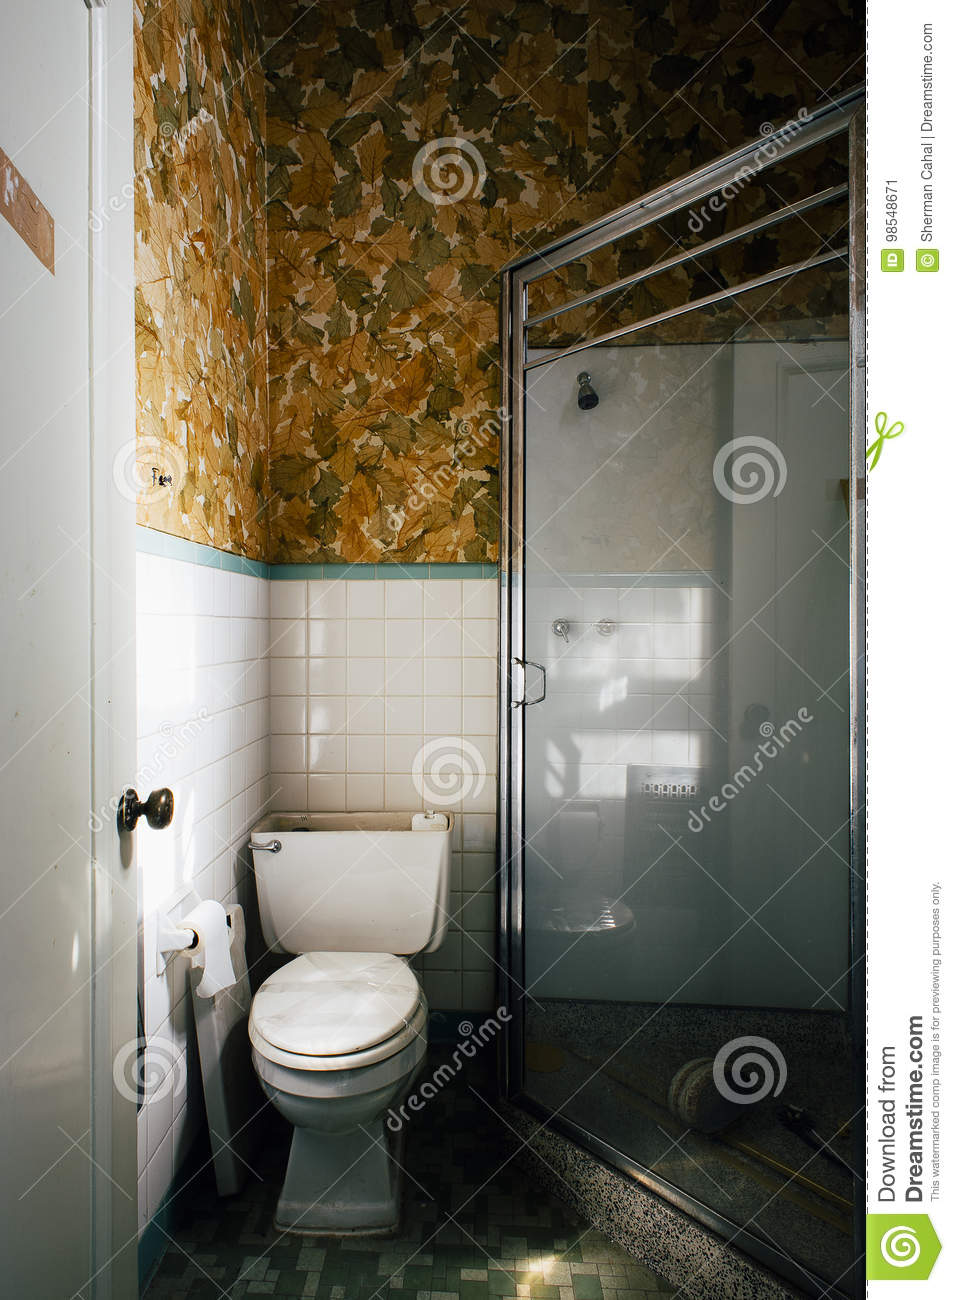 Pattern Wallpaper In Clean Bathroom With Toilet And Shower